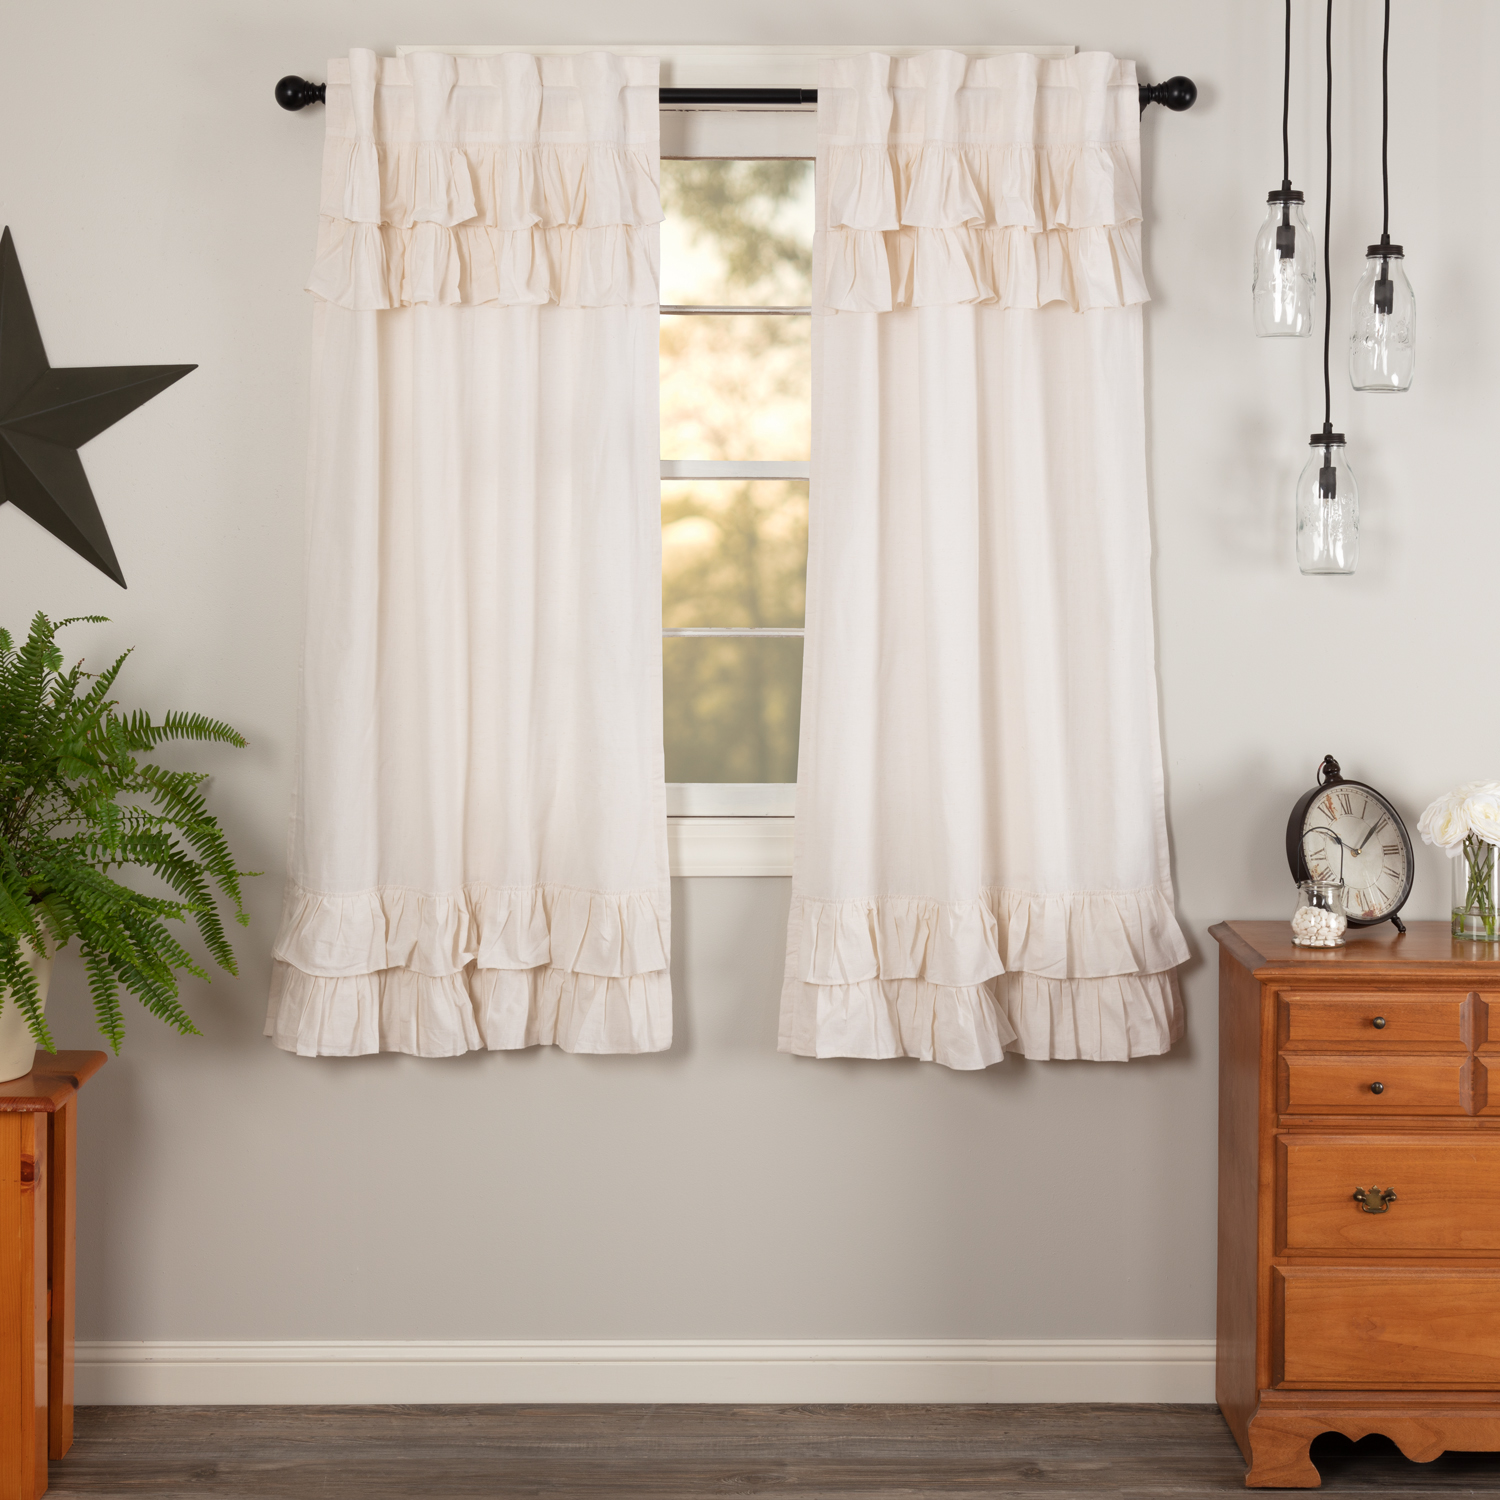 Simple Life Flax Antique White Ruffled Short Panel Set of 2 63x36